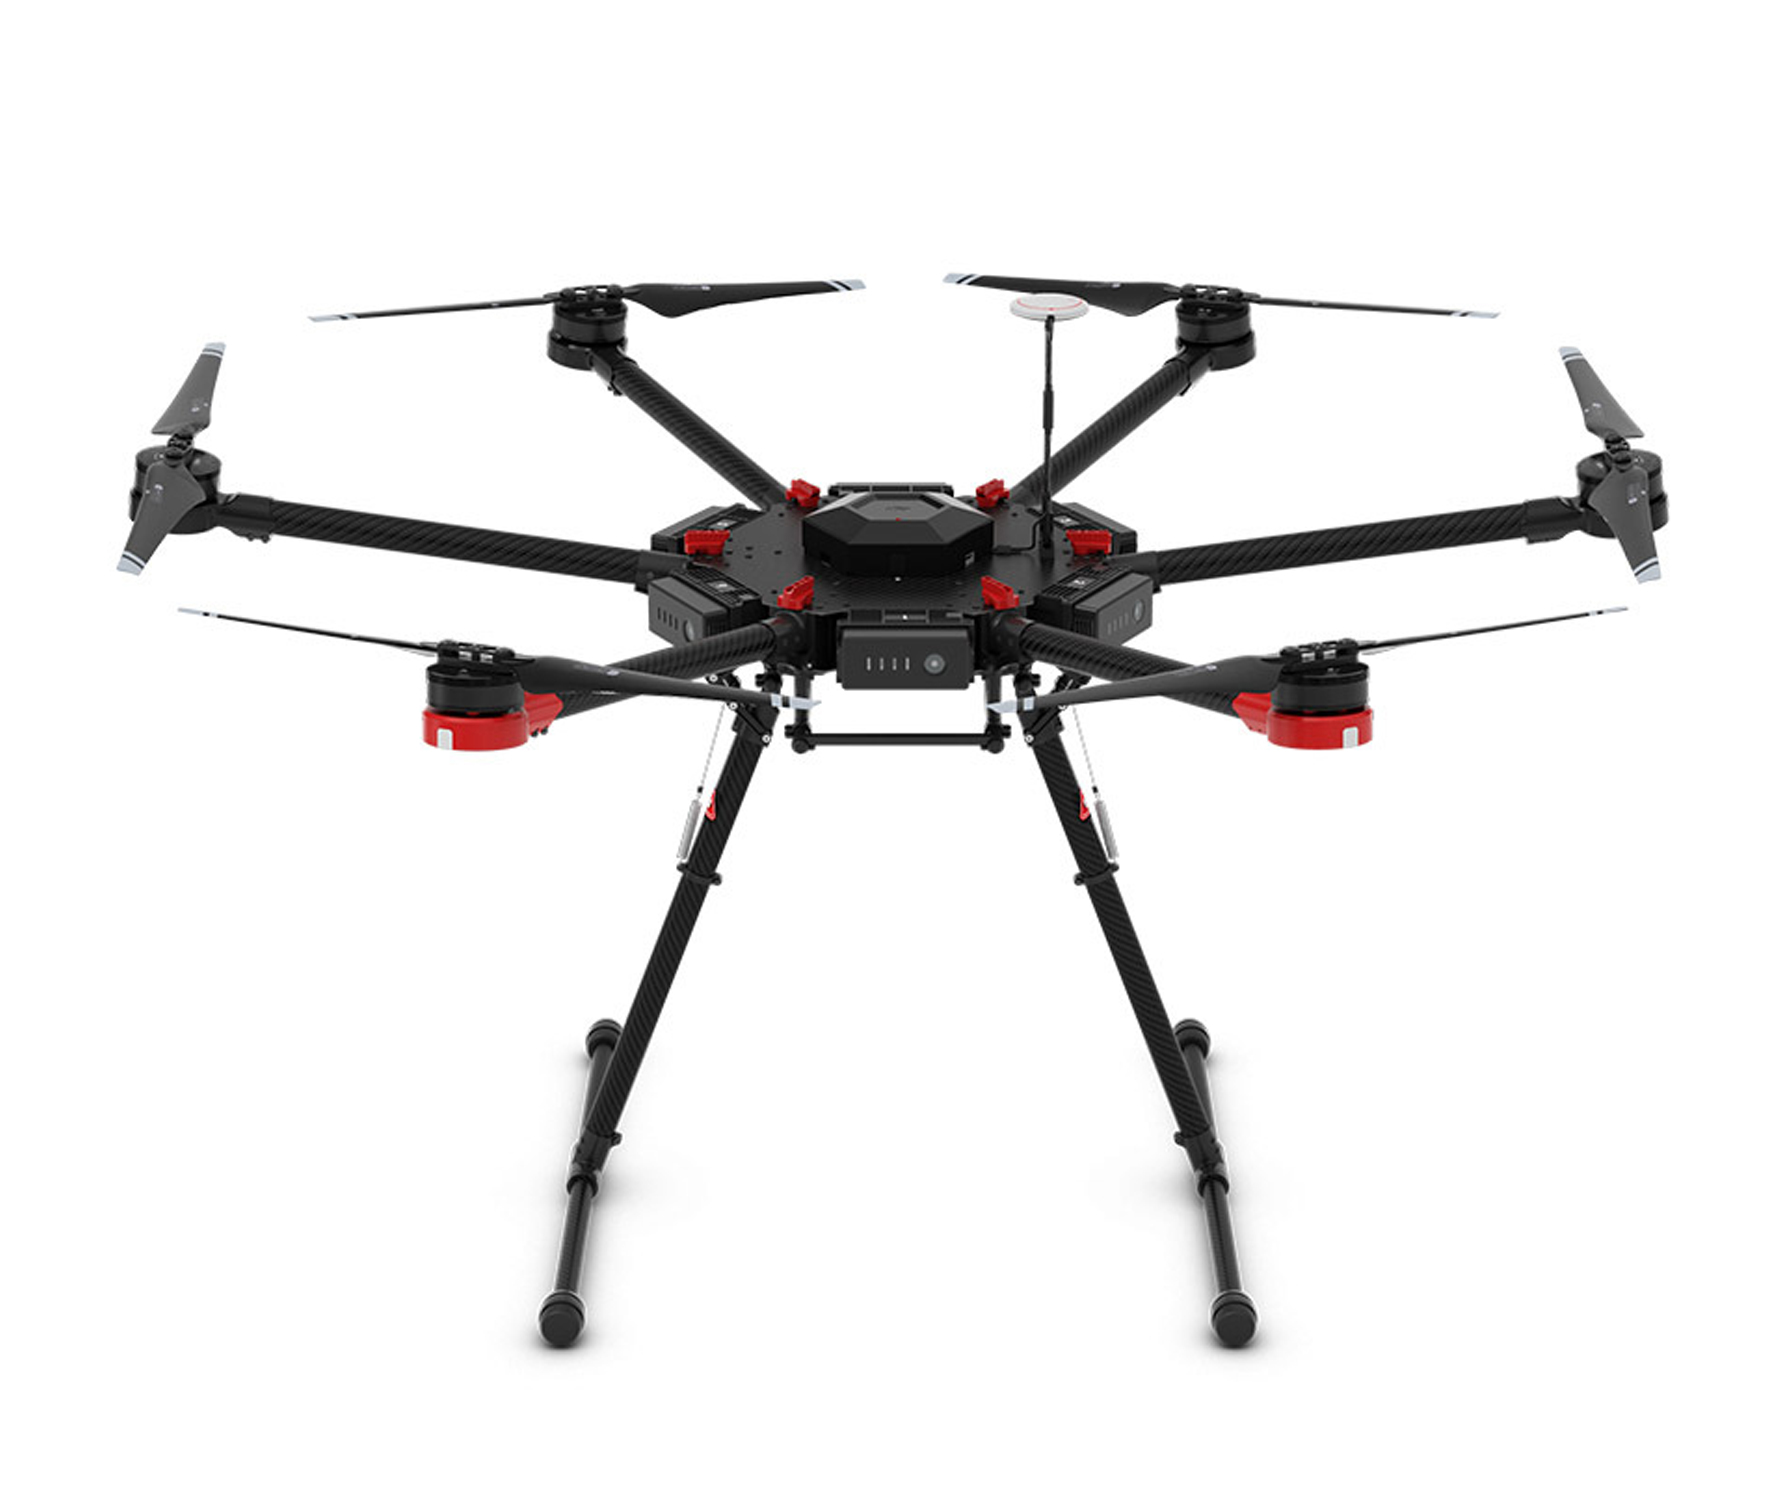 DJI M600 - Specifications:Diagonal Wheelbase 1133 mmAircraft Dimensions: 1668 mm x 1518 mm x 759 mm (Propellers, frame arms and GPS mount unfolded)640 mm x 582 mm x 623 mm (Frame arms and GPS mount folded)Package Dimensions: 620 mm x 320 mm x 505 mm6 Intelligent Flight Batteries10kg WeightMax Takeoff Weight 15.1 kghttps://www.dji.com/sg/matrice600